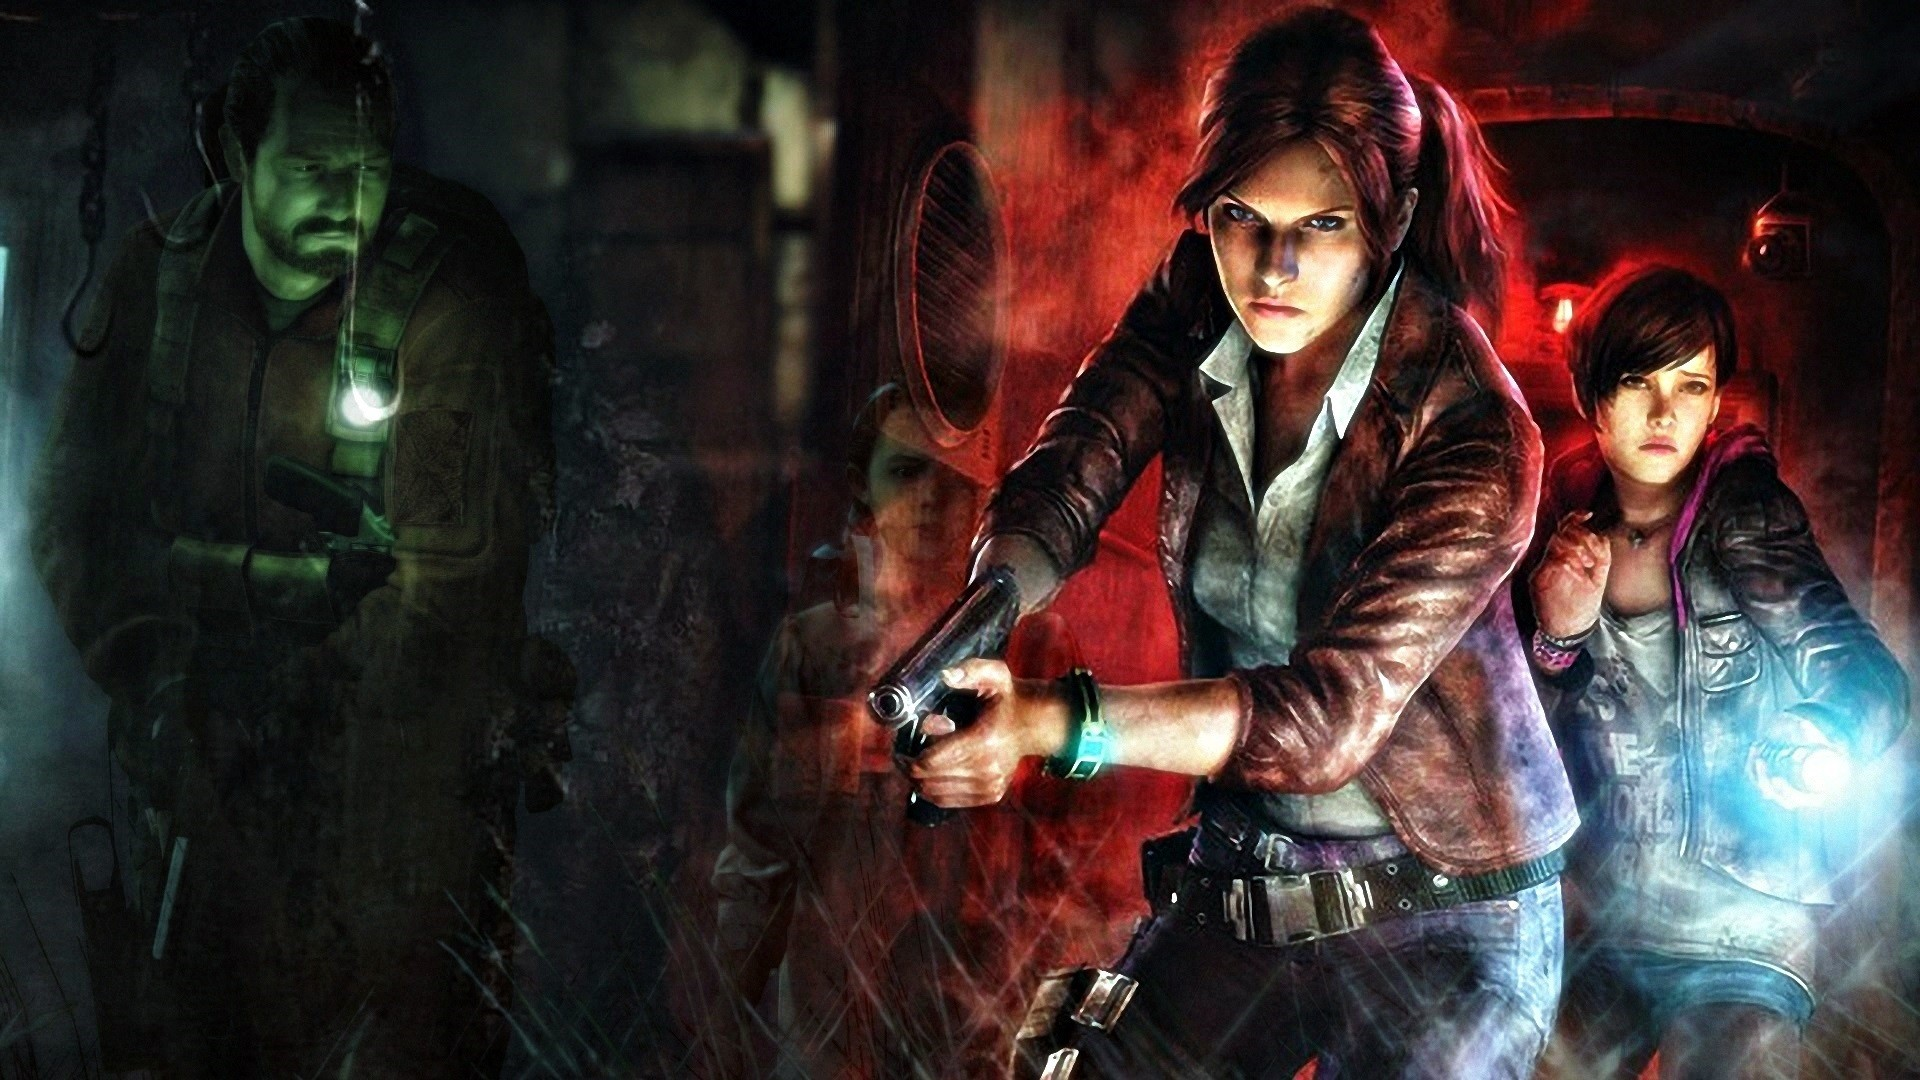 1920x1080  7 Resident Evil: Revelations 2 HD Wallpapers | Backgrounds -  Wallpaper Abyss